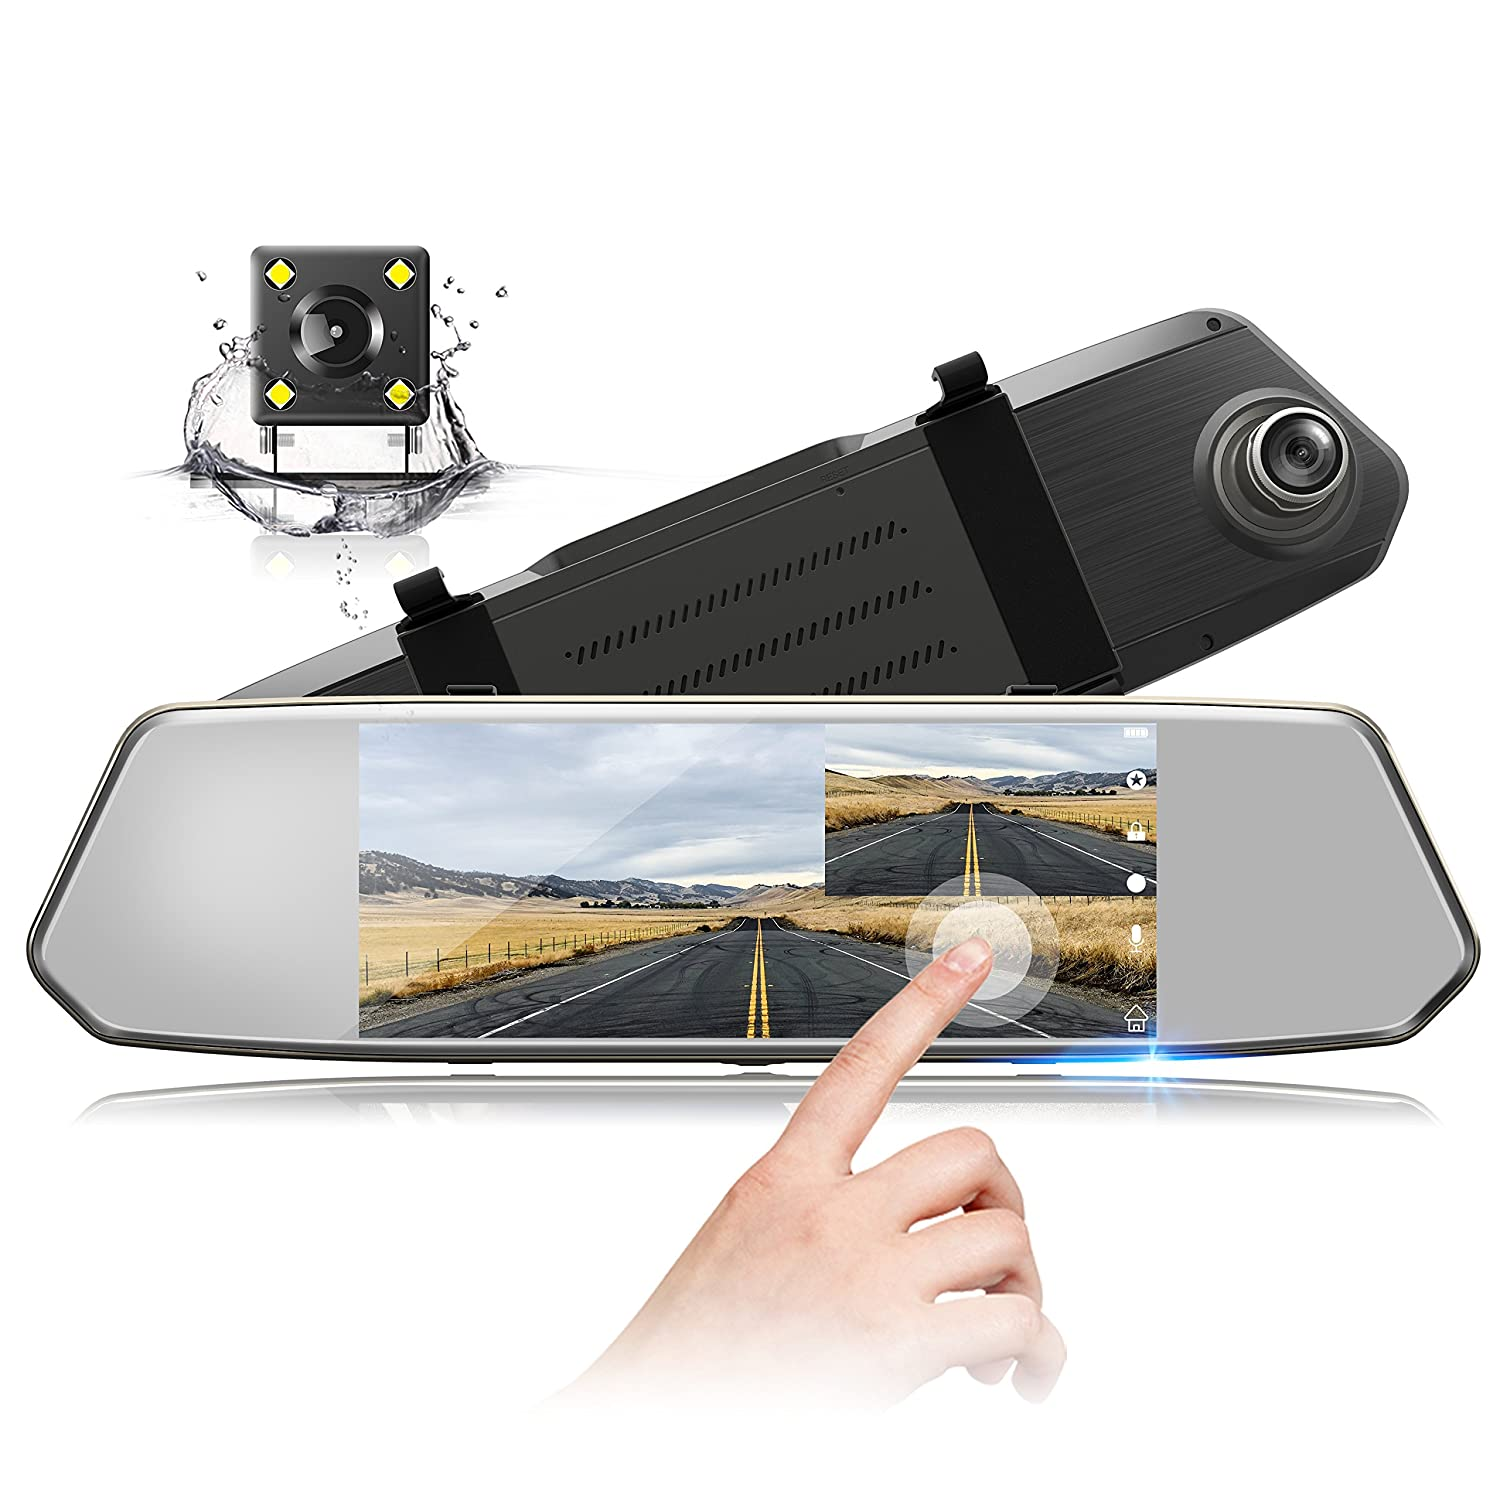 TOGUARD Mirror Dash Cam 1080P Dual Lens 7 Inch IPS Touch Screen, Dash Cam Front and Rear View Waterproof Backup Camera 170° Wide Angle with G-Sensor Parking Monitor Motion Detection CE35